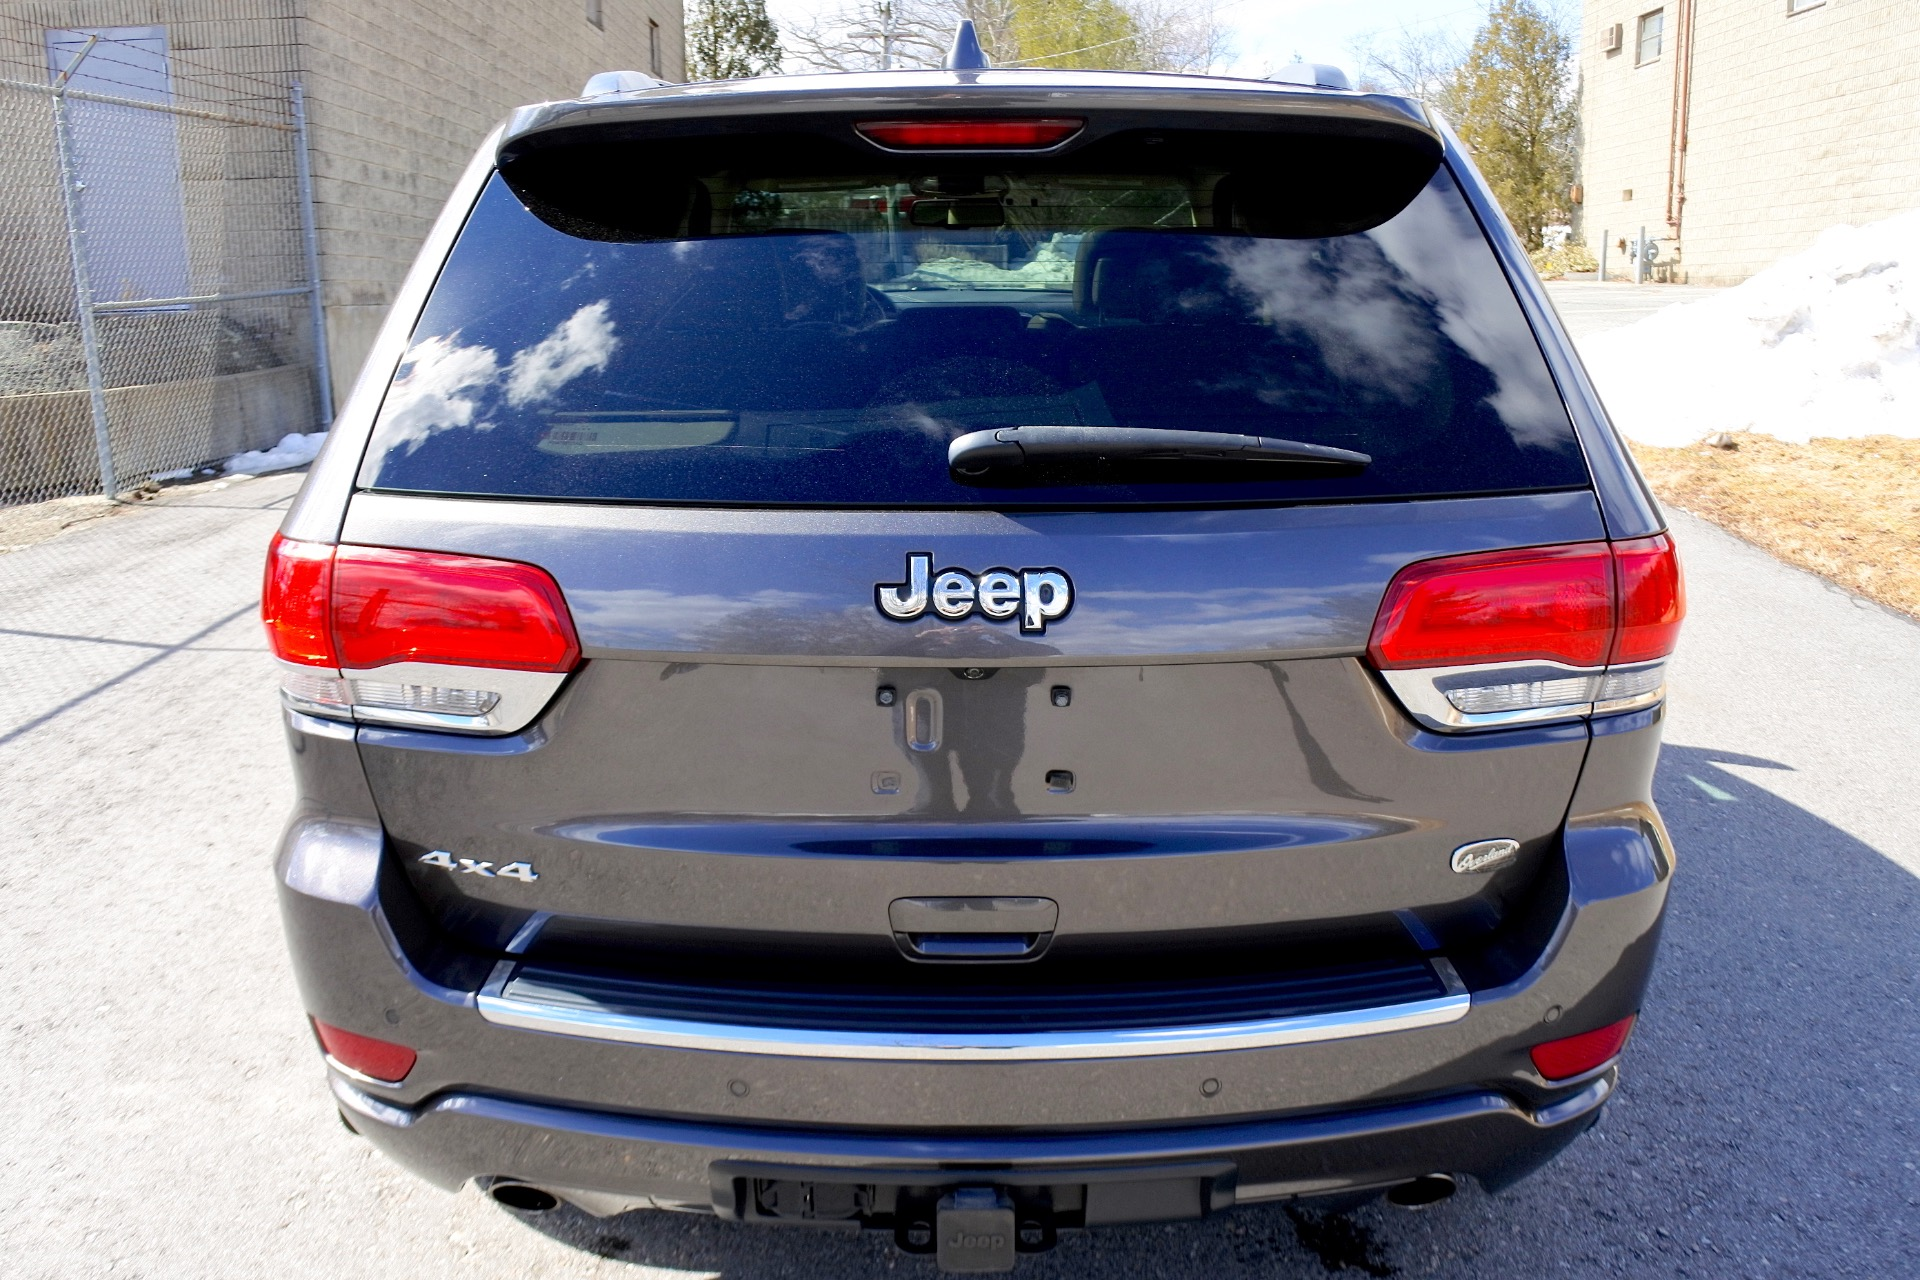 Used 2014 Jeep Grand Cherokee 4WD 4dr Overland Used 2014 Jeep Grand Cherokee 4WD 4dr Overland for sale  at Metro West Motorcars LLC in Shrewsbury MA 4